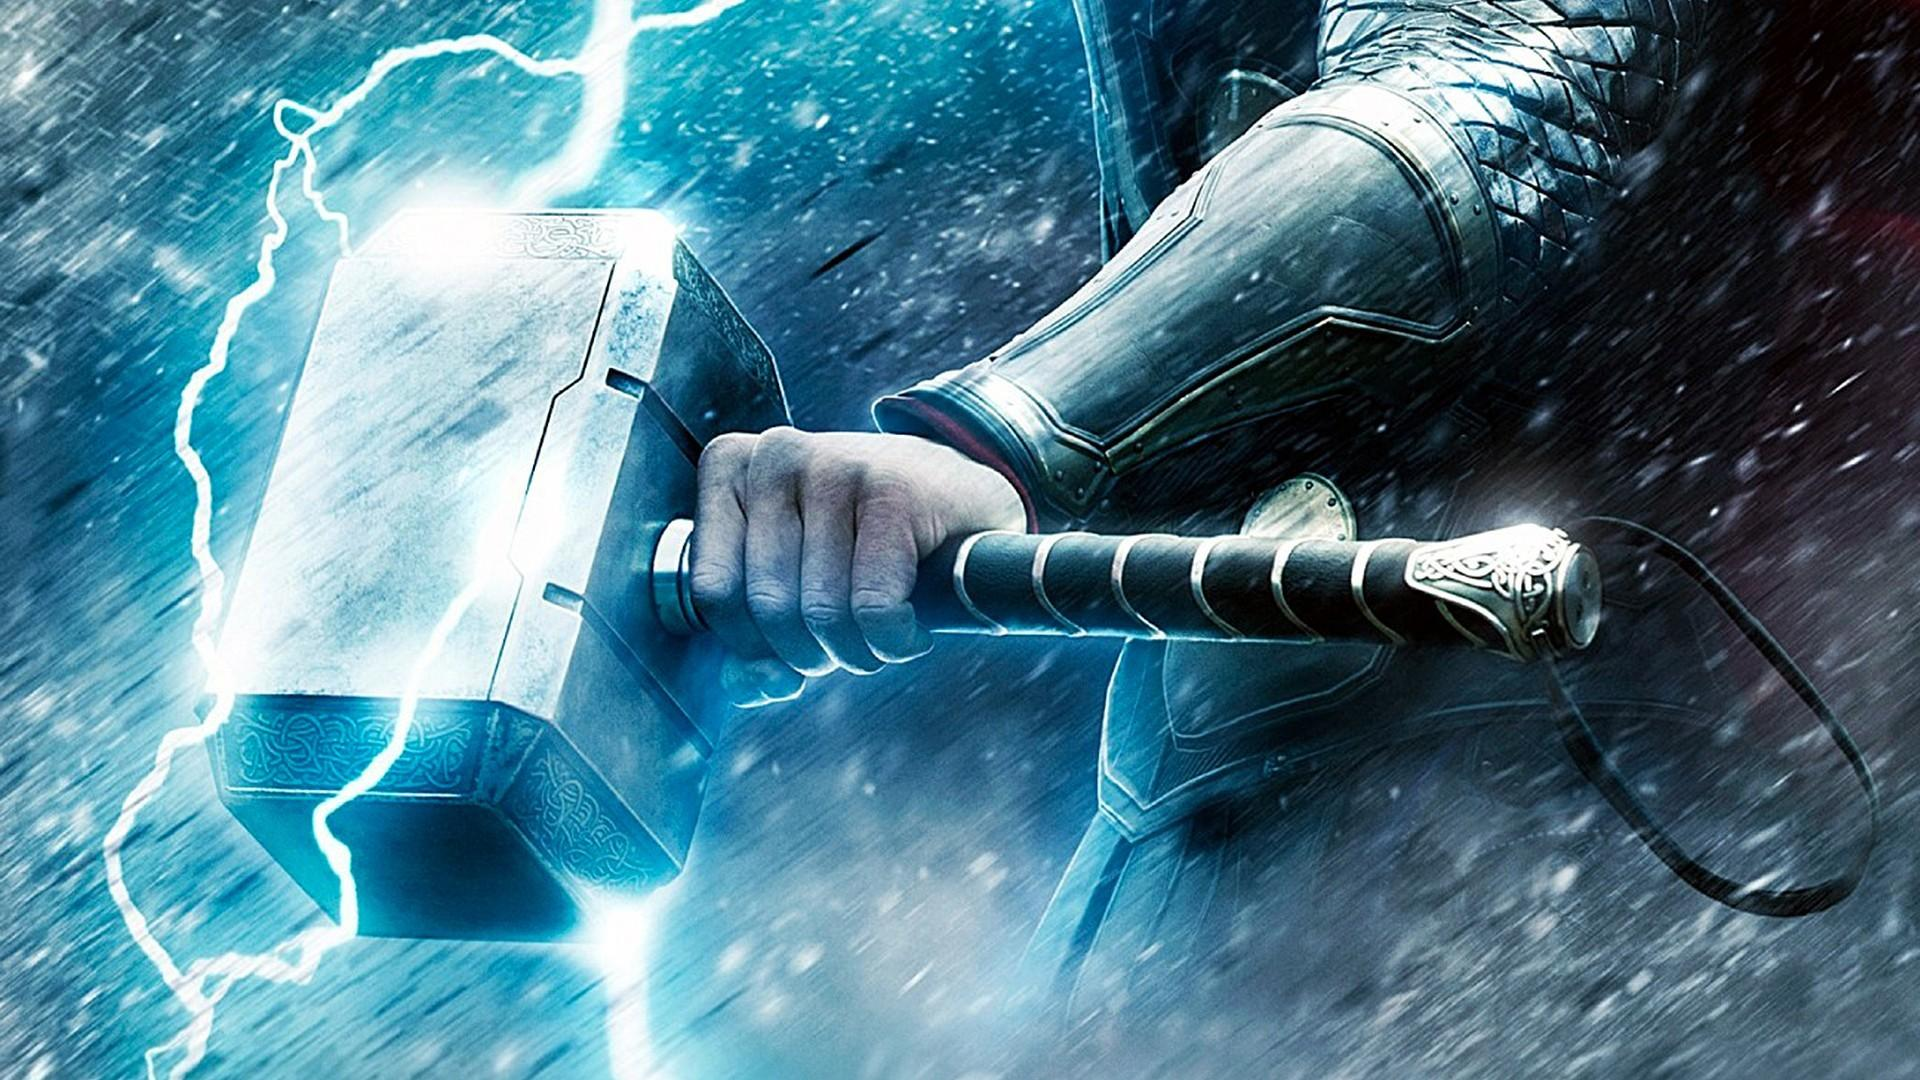 69+ Thors Hammer Wallpapers